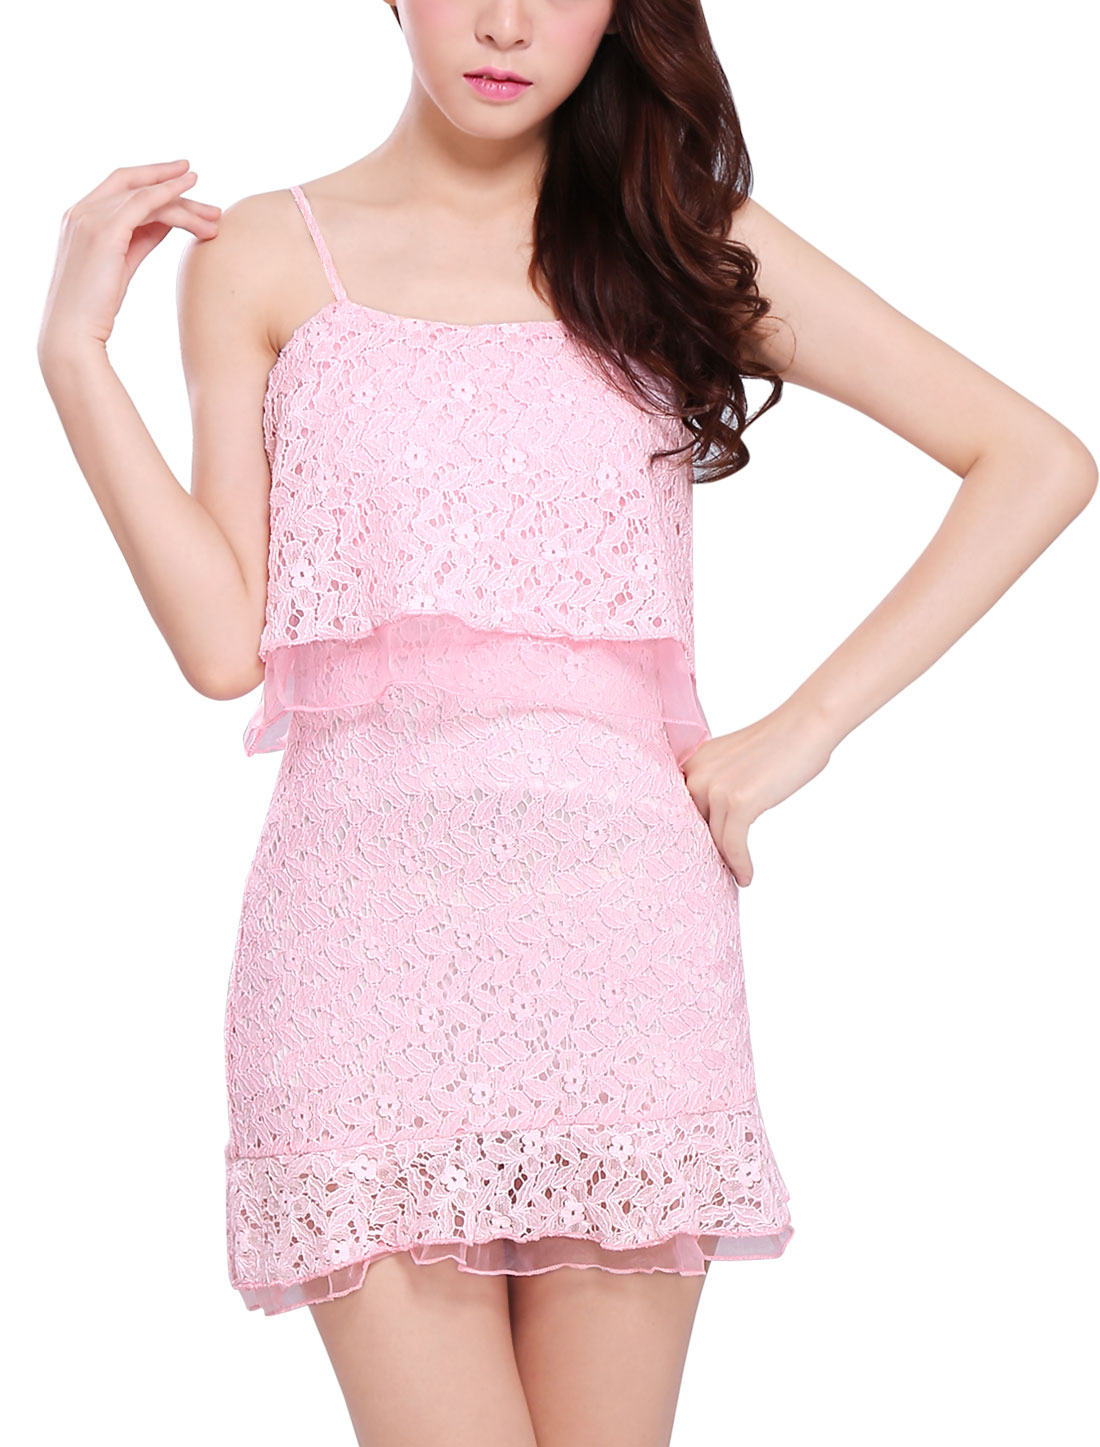 Lady Spaghetti Strap Concealed Zipper Back Crochet Tunic Top Pink S